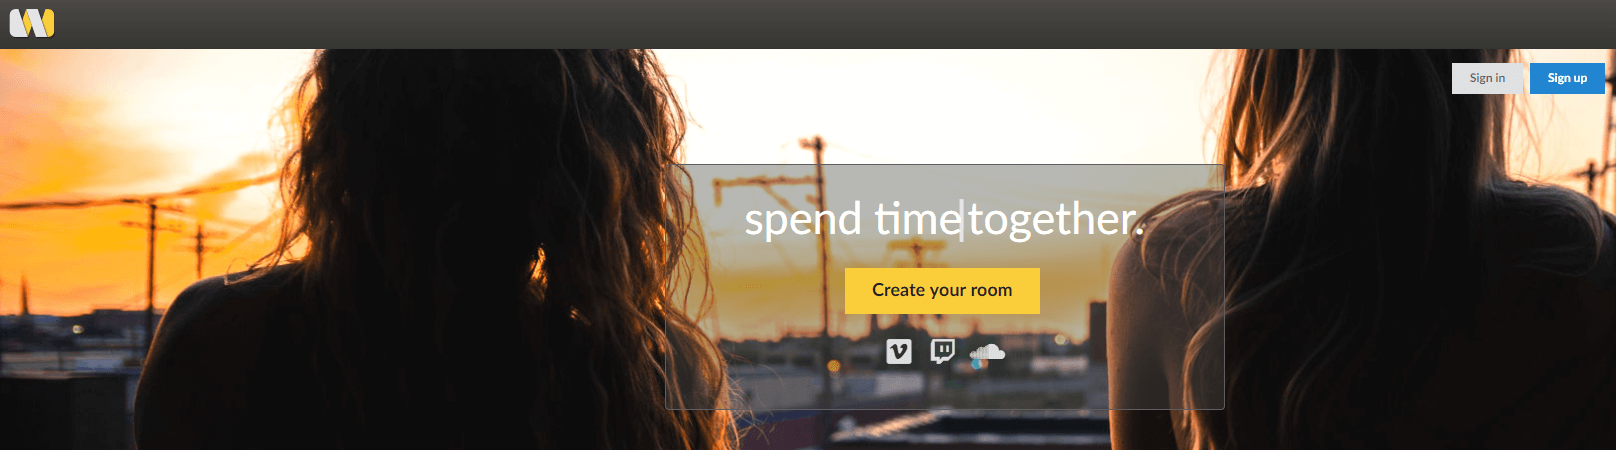 Watch2Gether- Registration Free Streaming Service